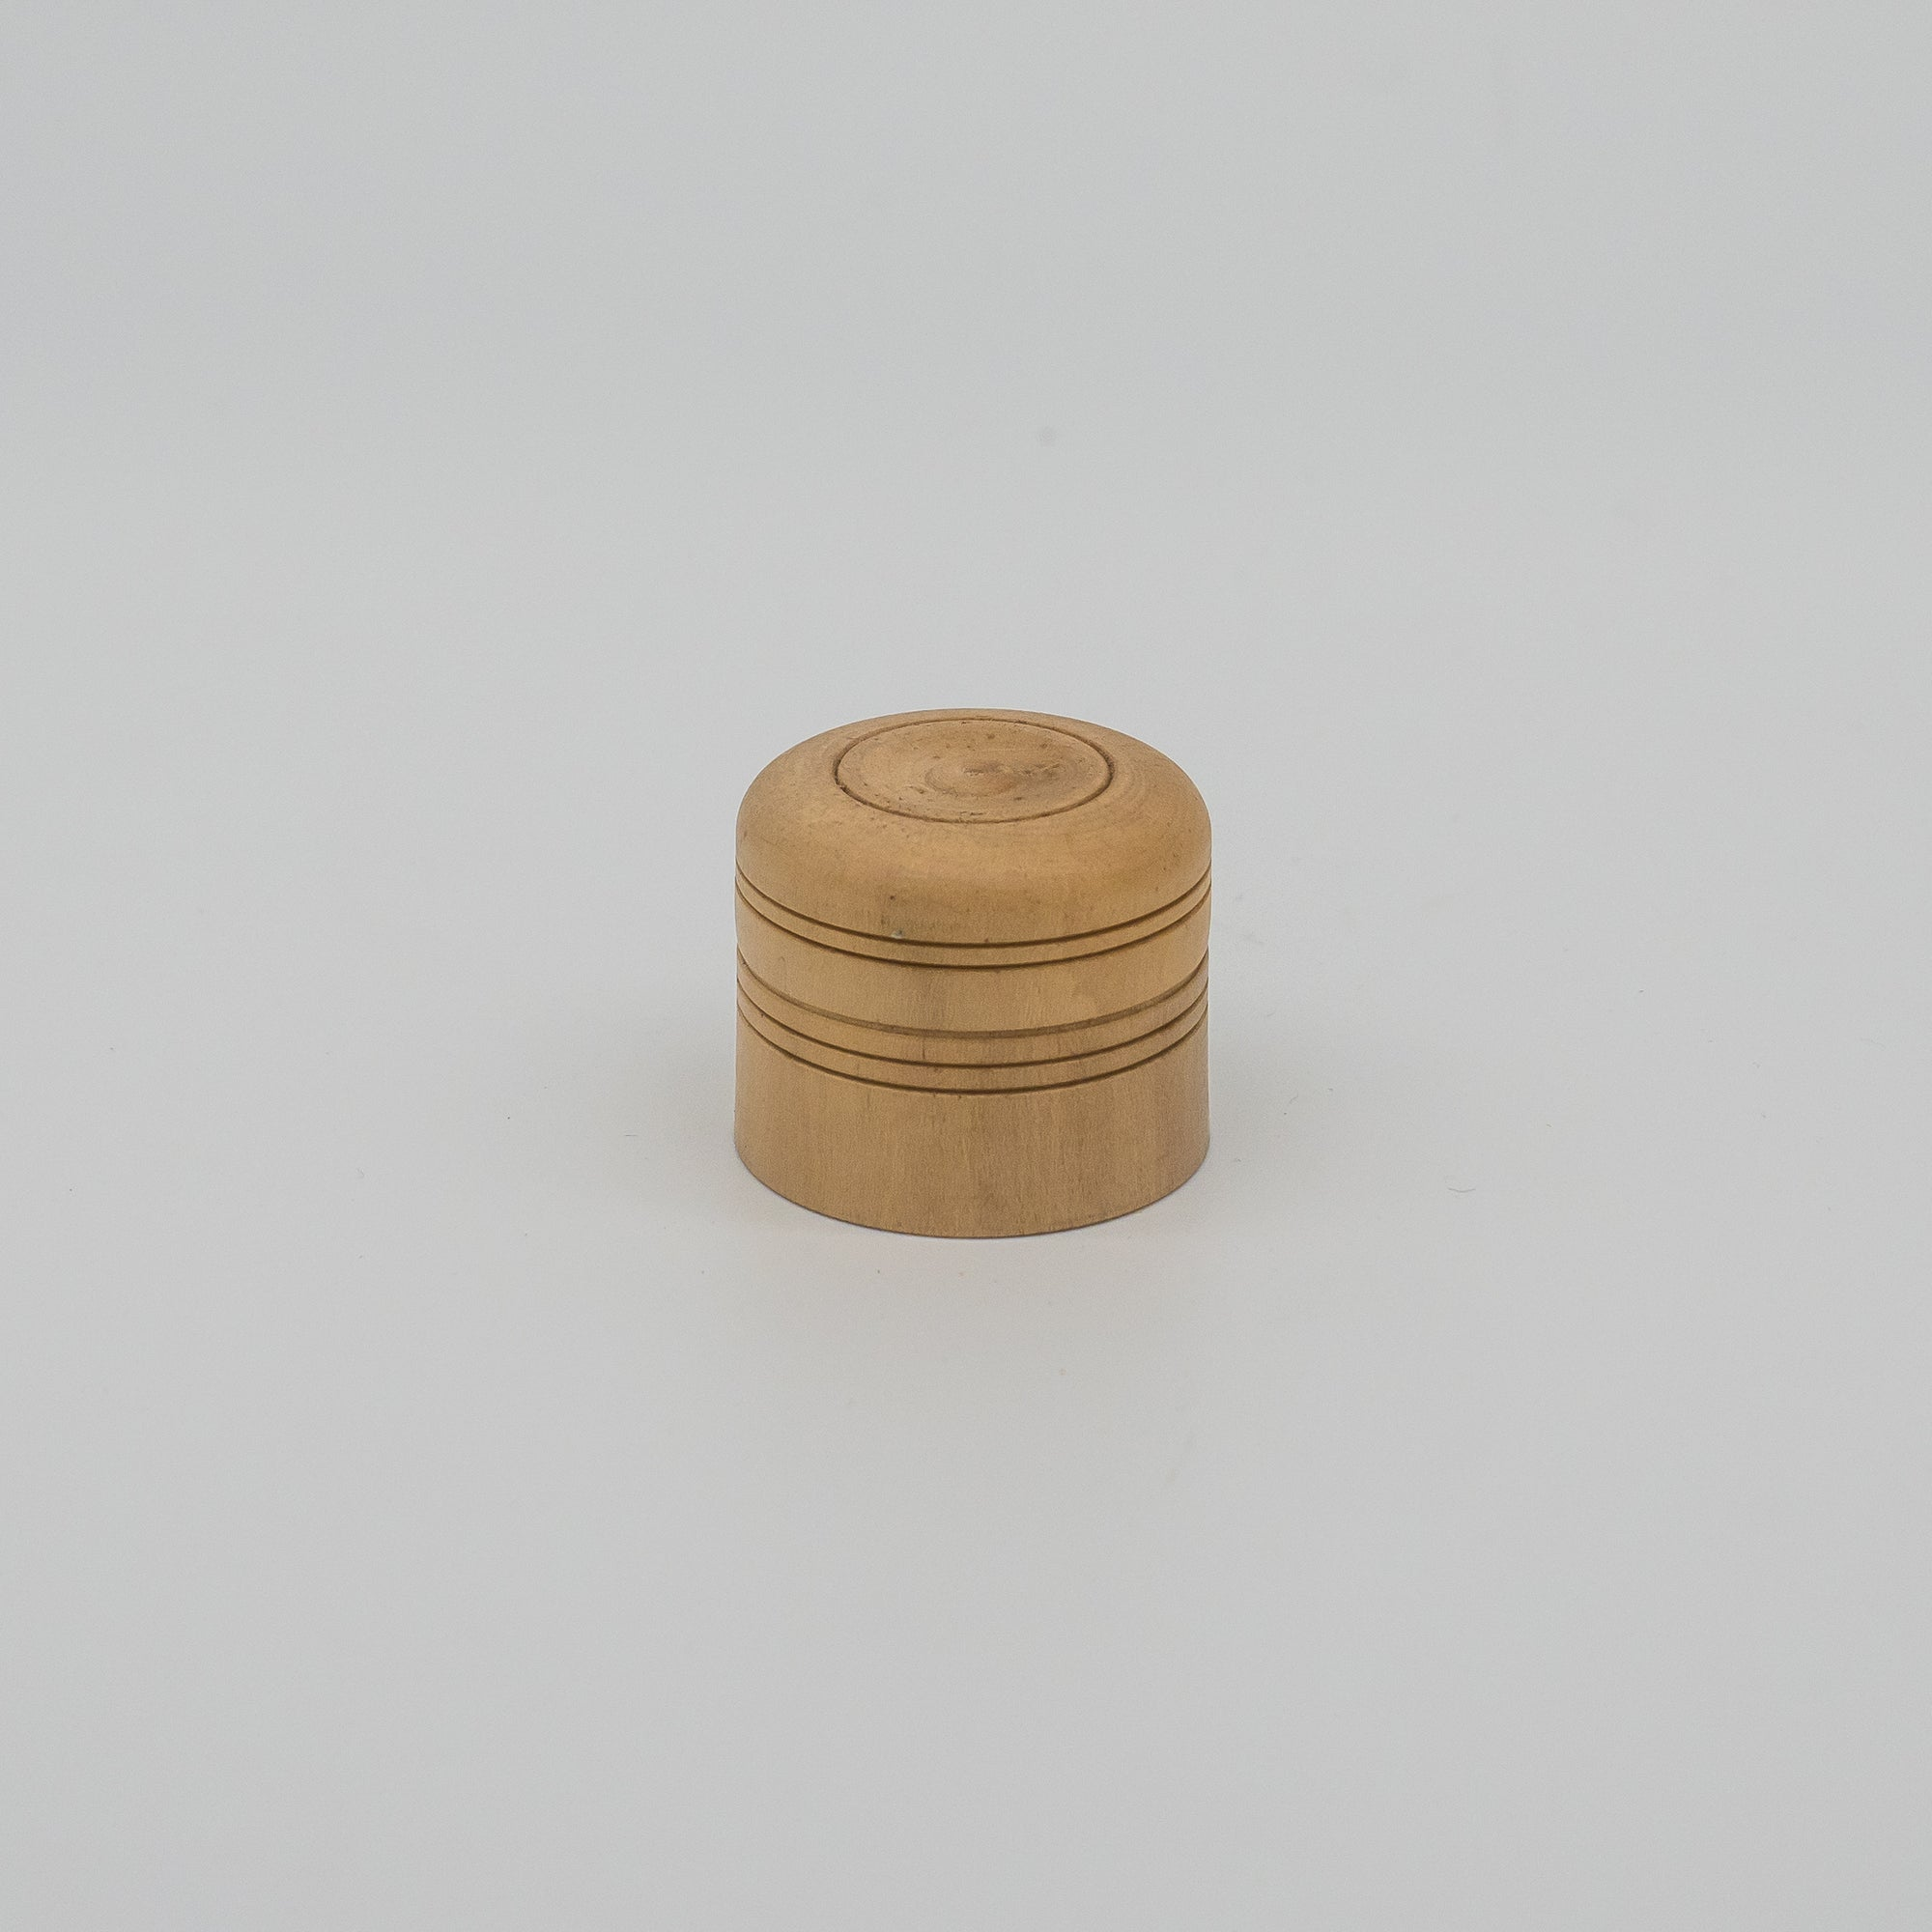 Little wooden box